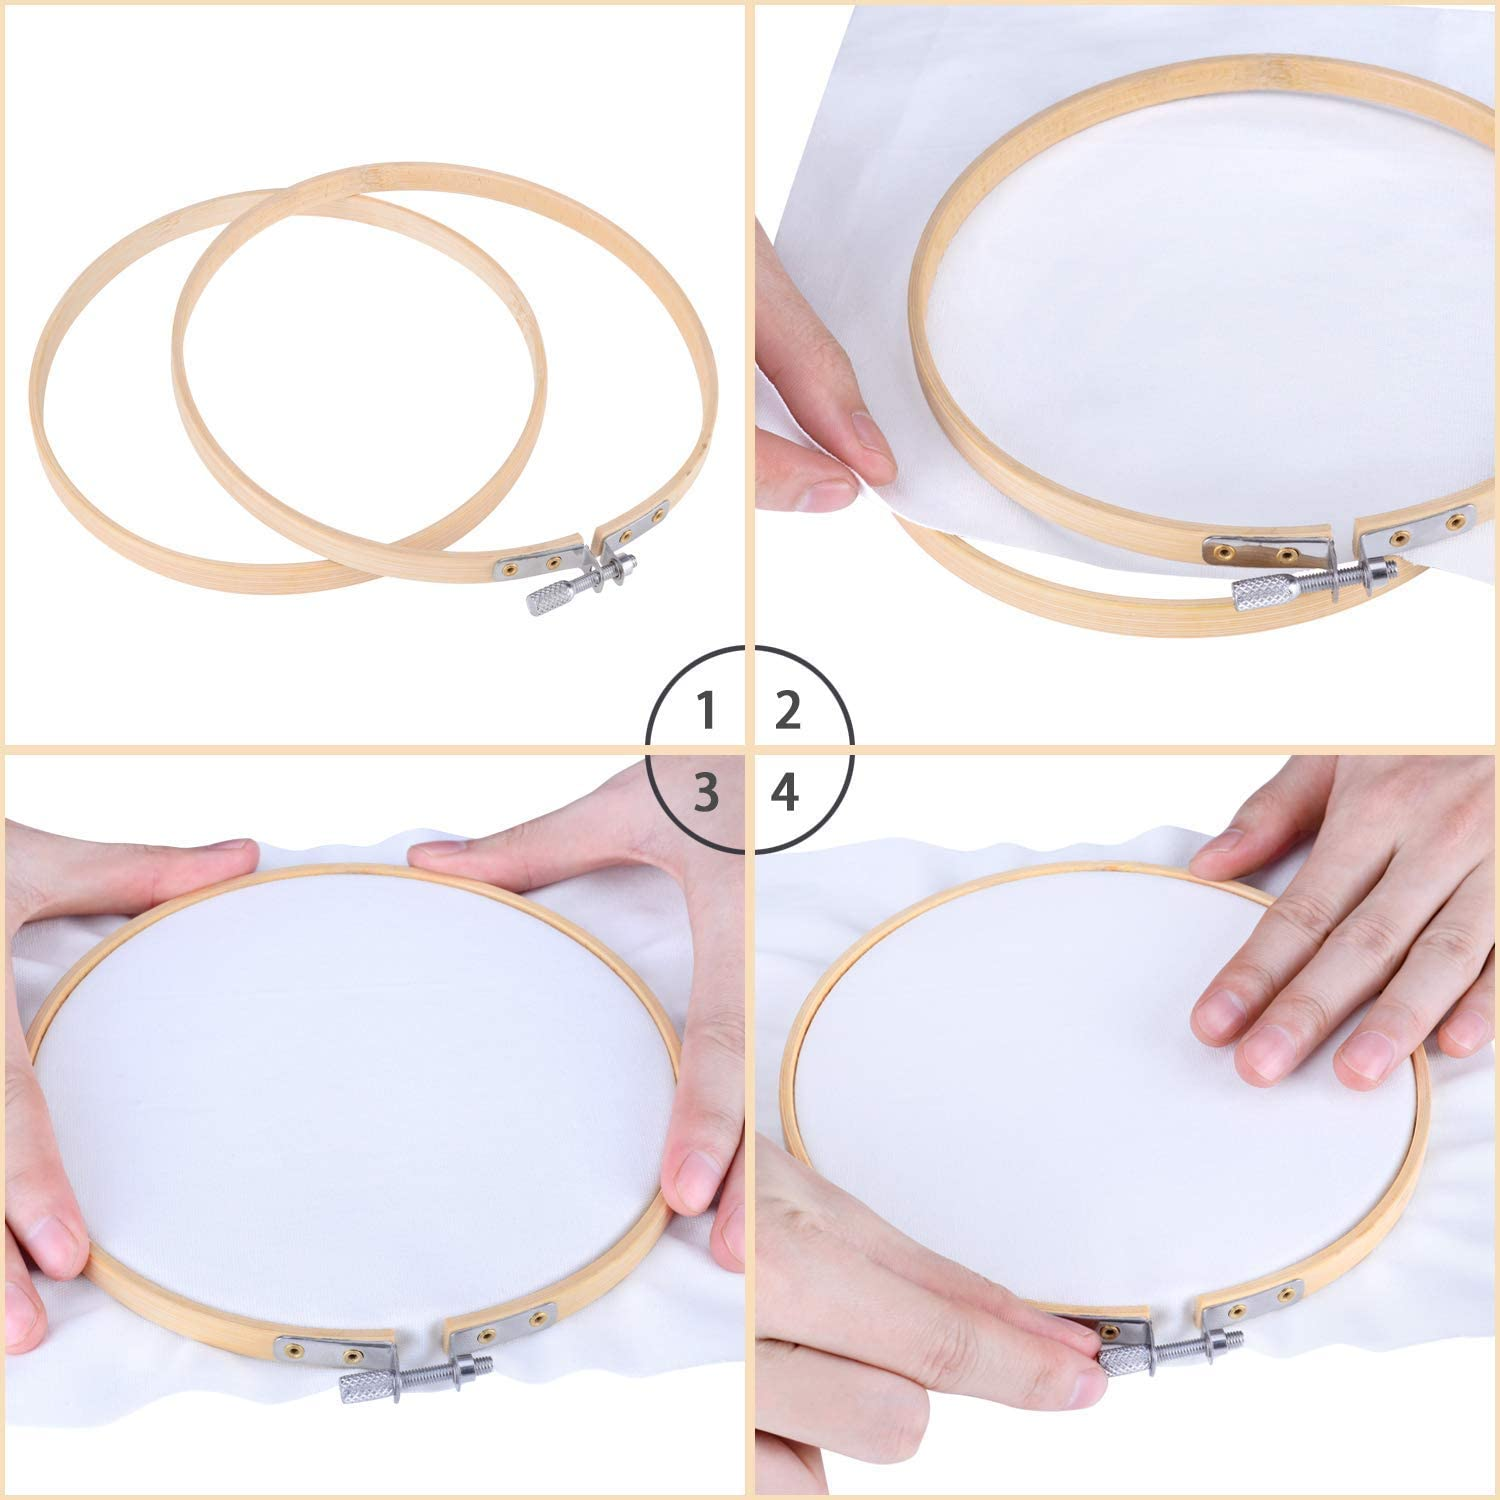 Super Show 10 Pieces 12 Inch Embroidery Hoops Wooden Round Adjustable Bamboo Circle Cross Stitch Hoop Ring for Art Craft Handy Sewing